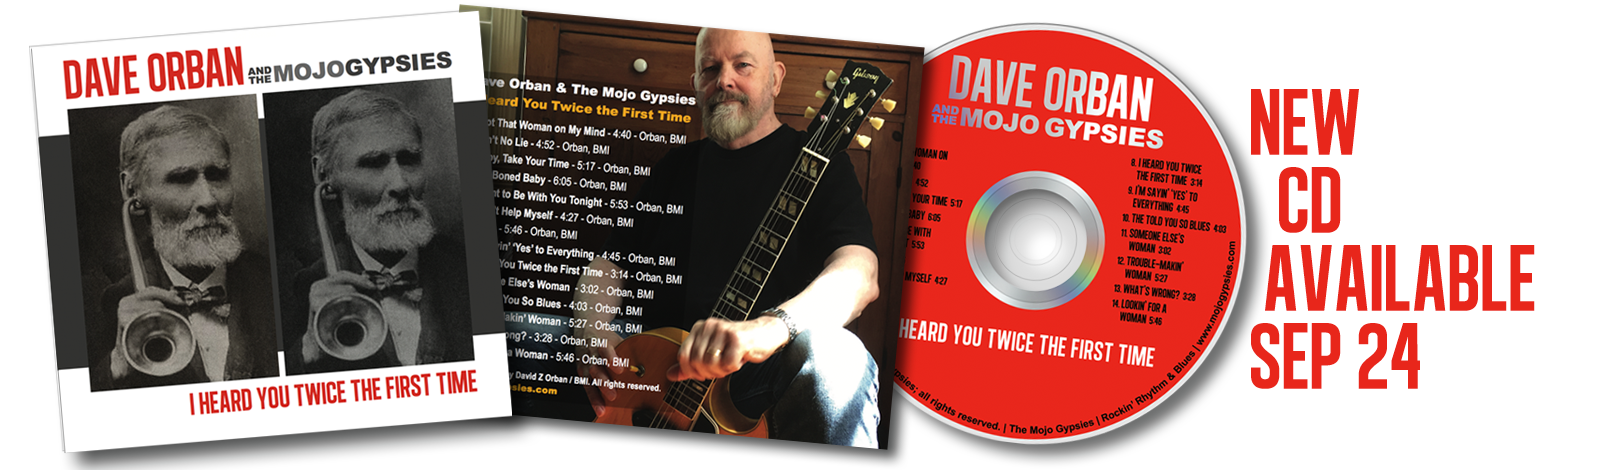 Mojo Gypsies New CD Available Now